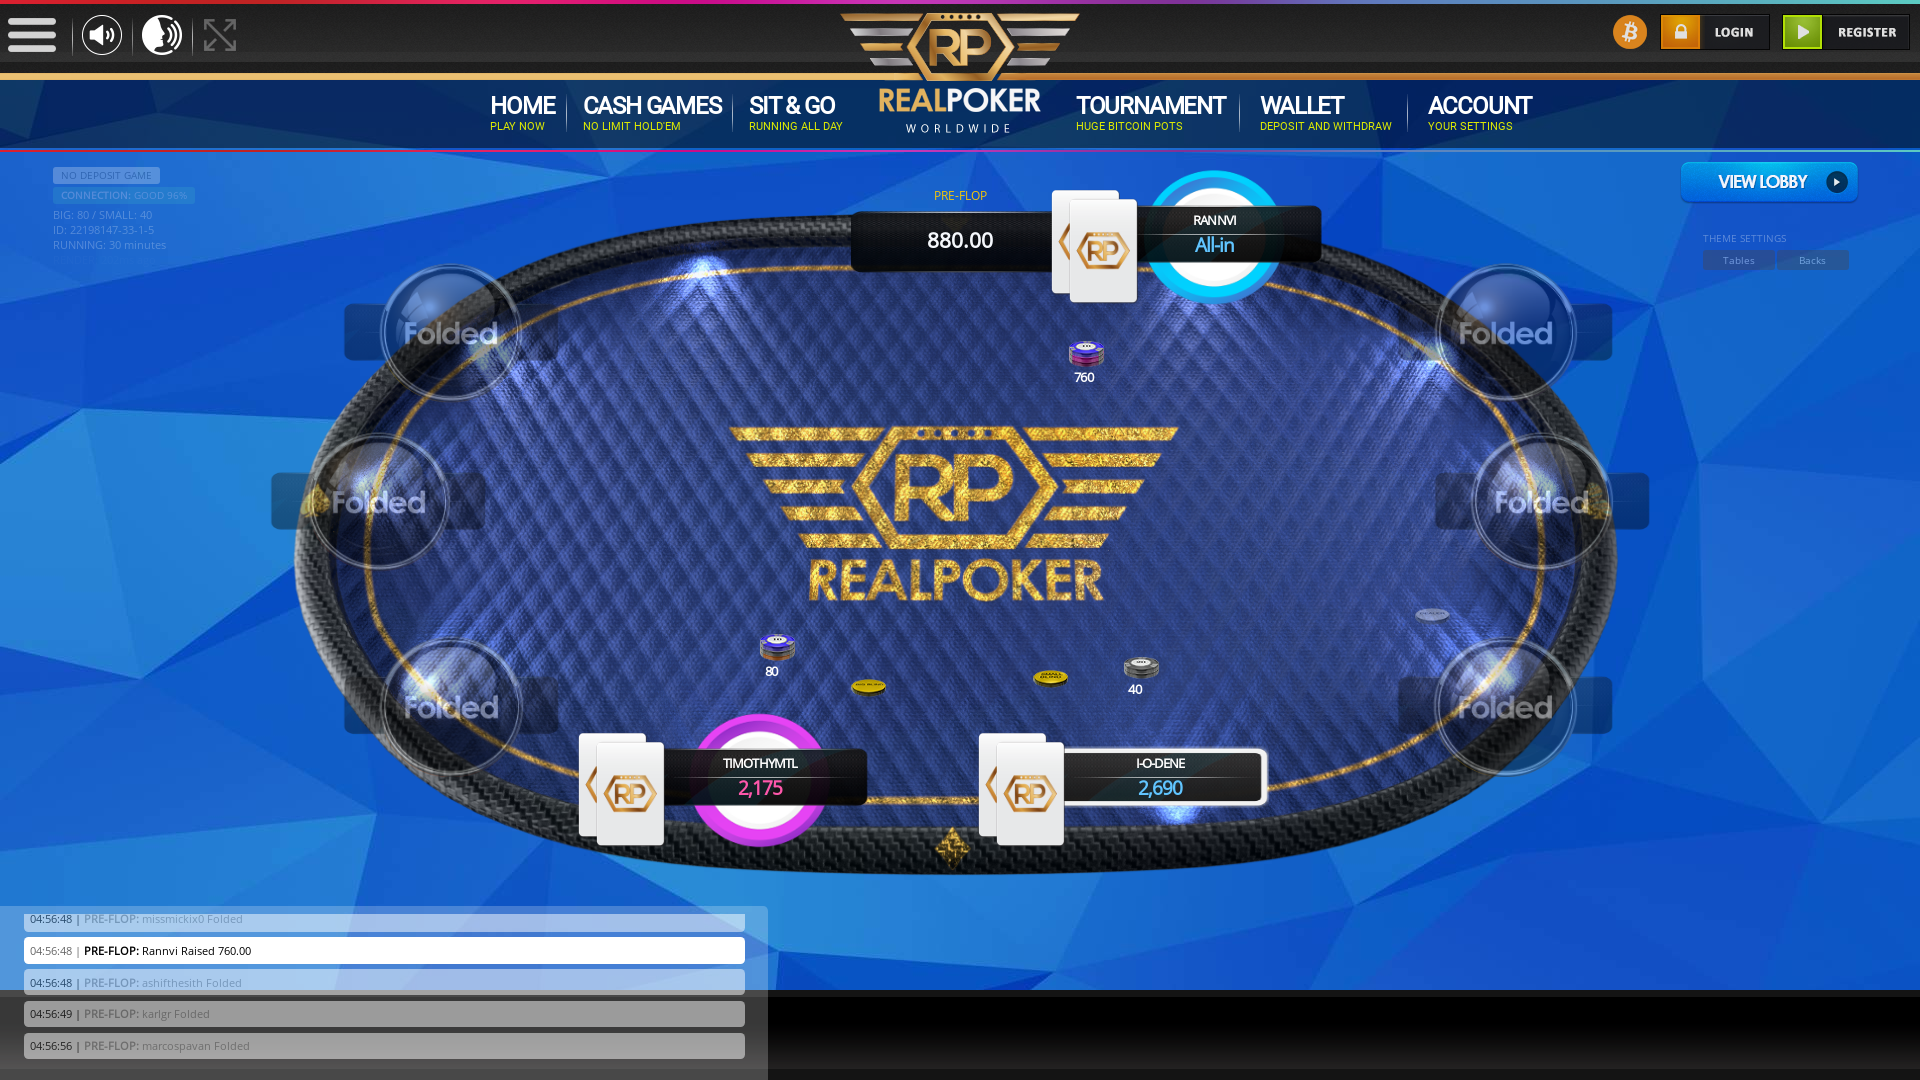 Slovenia online poker game on a 10 player table in the 29th minute